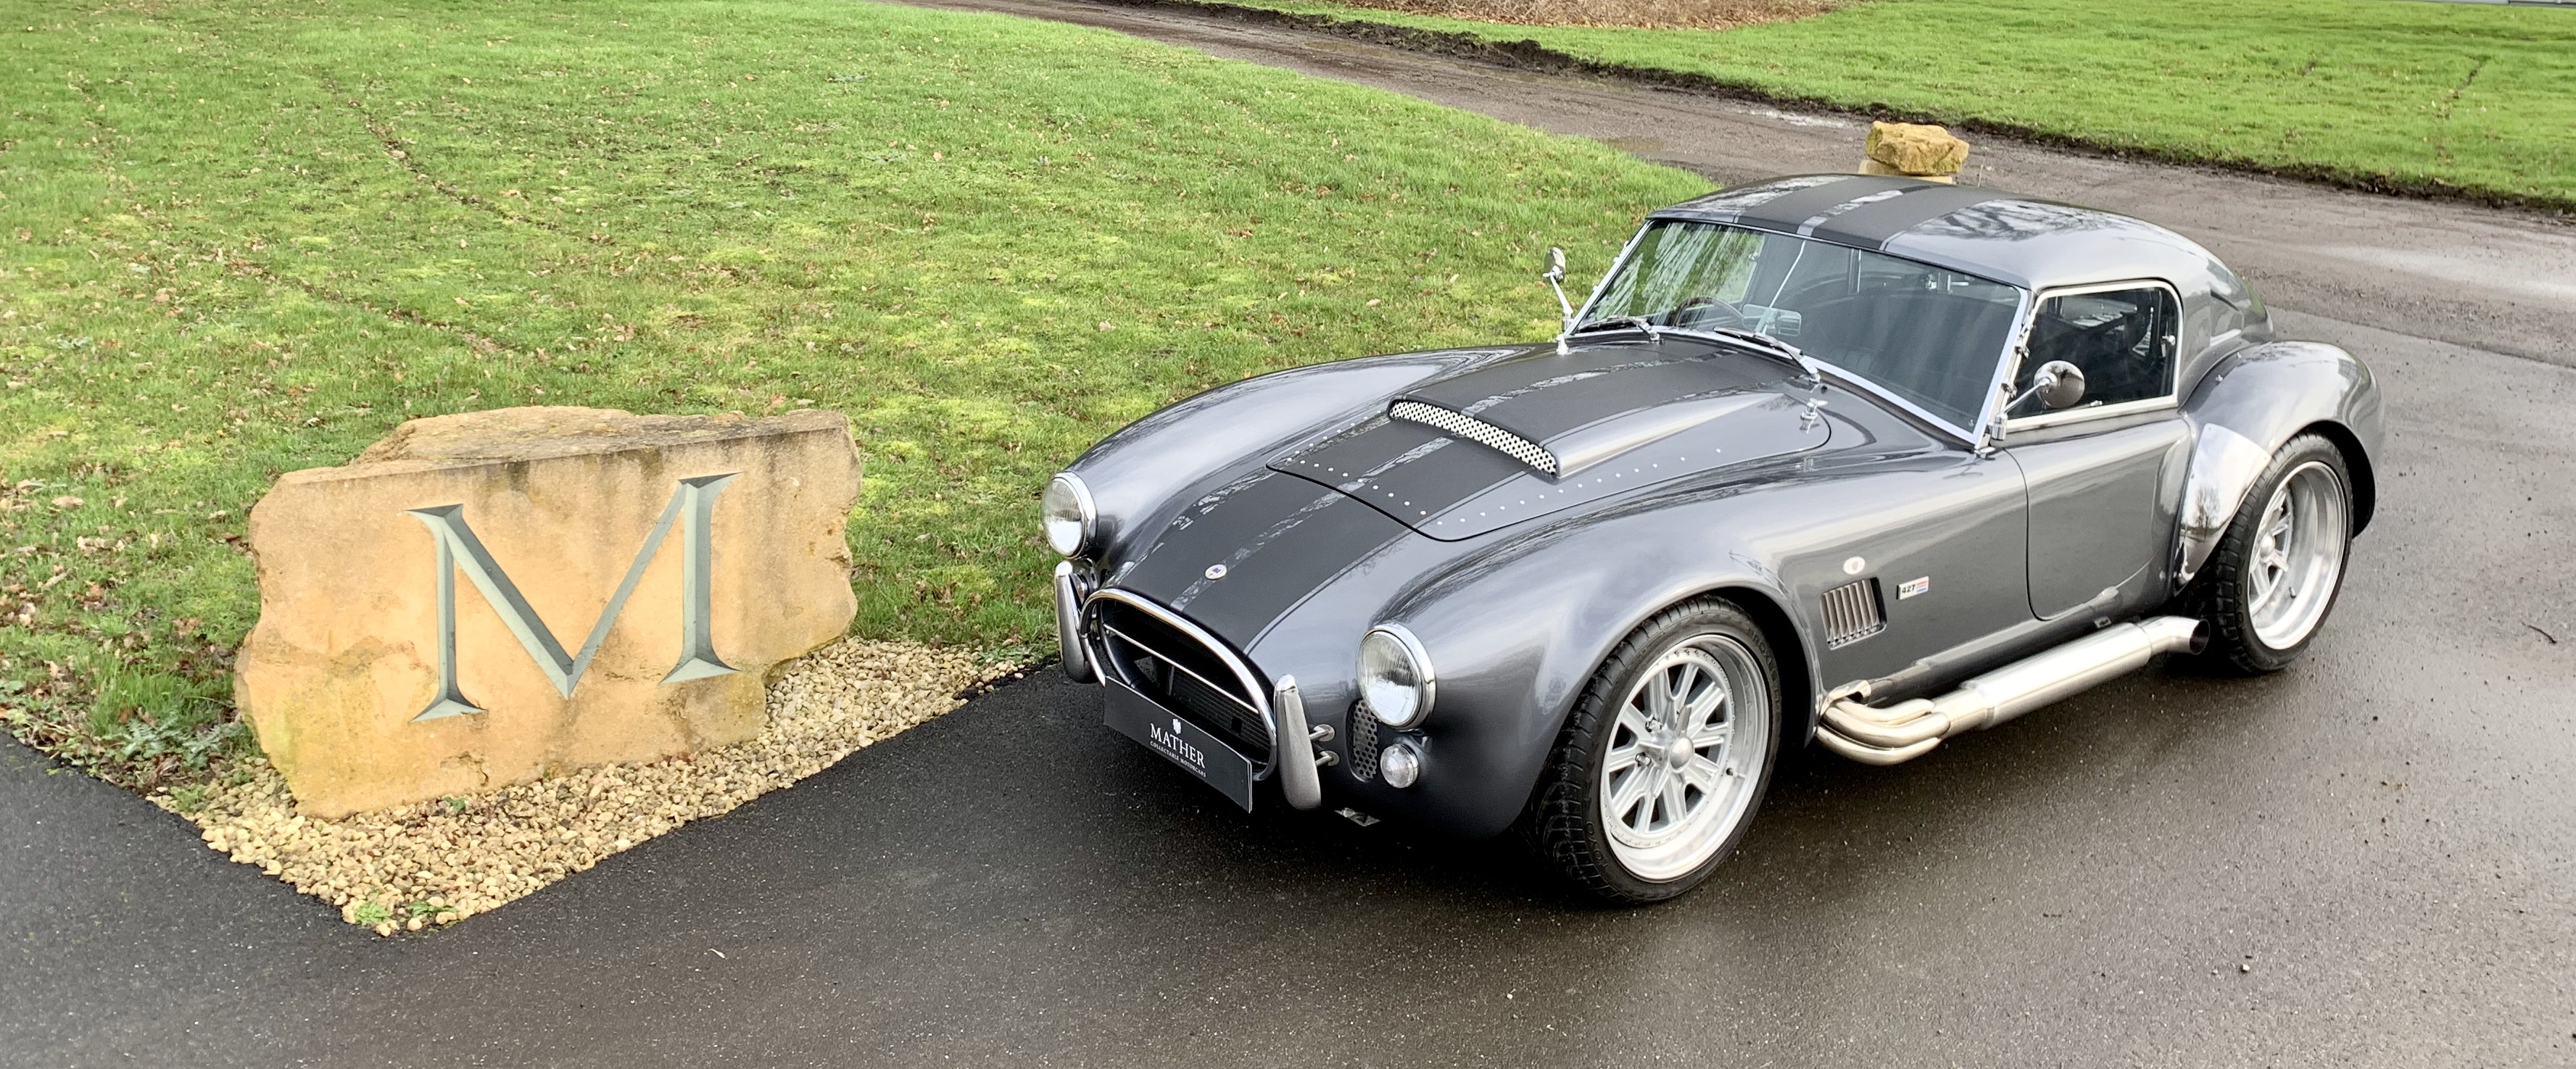 2005 AC Cobra Recreation